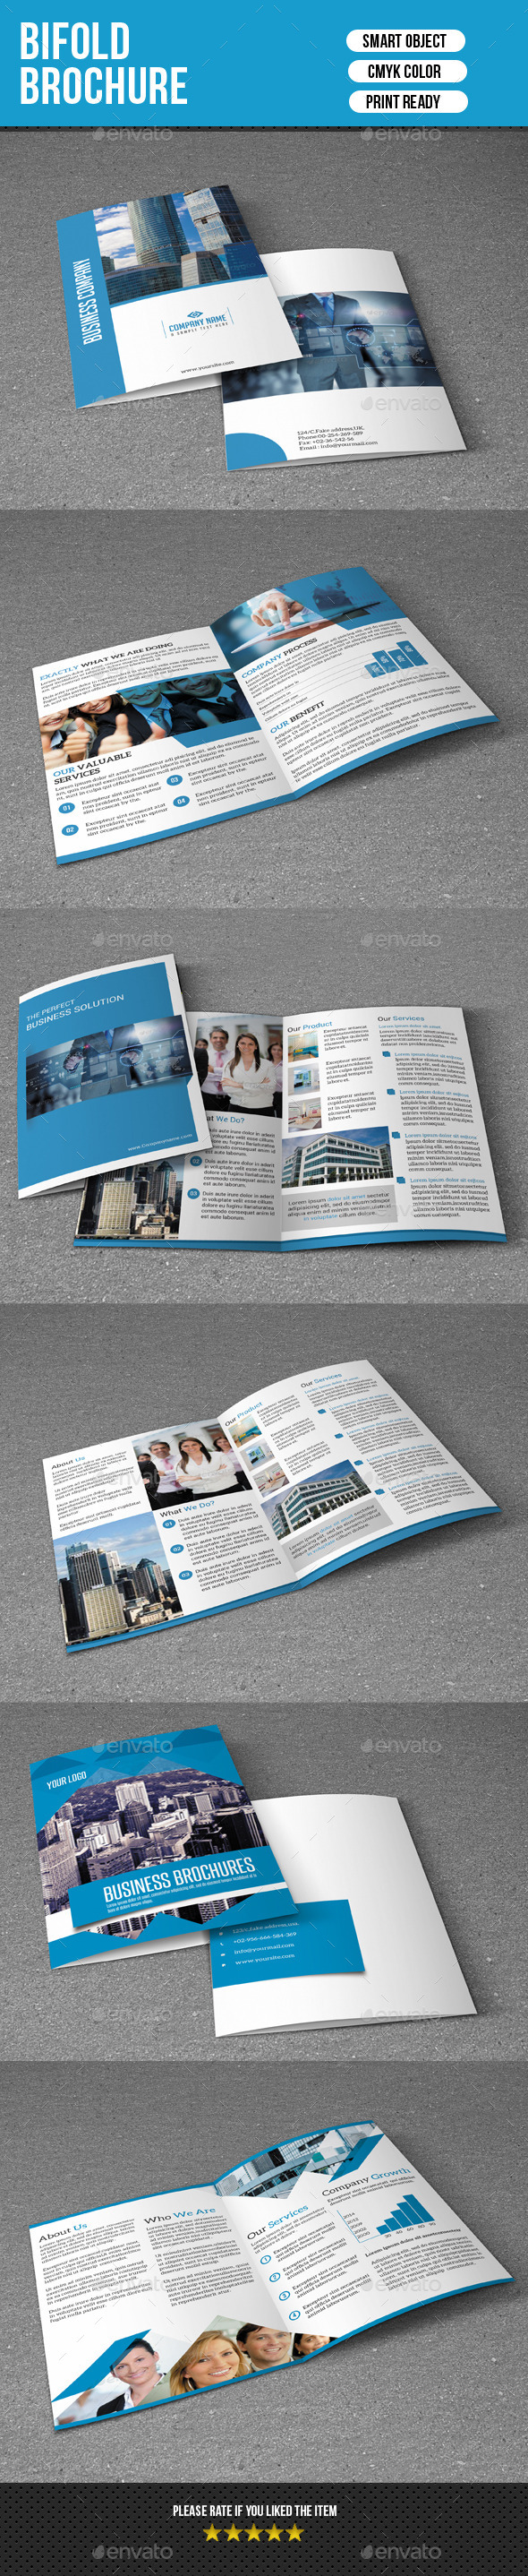 Bifold Brochure Bundle-V01 - Corporate Brochures